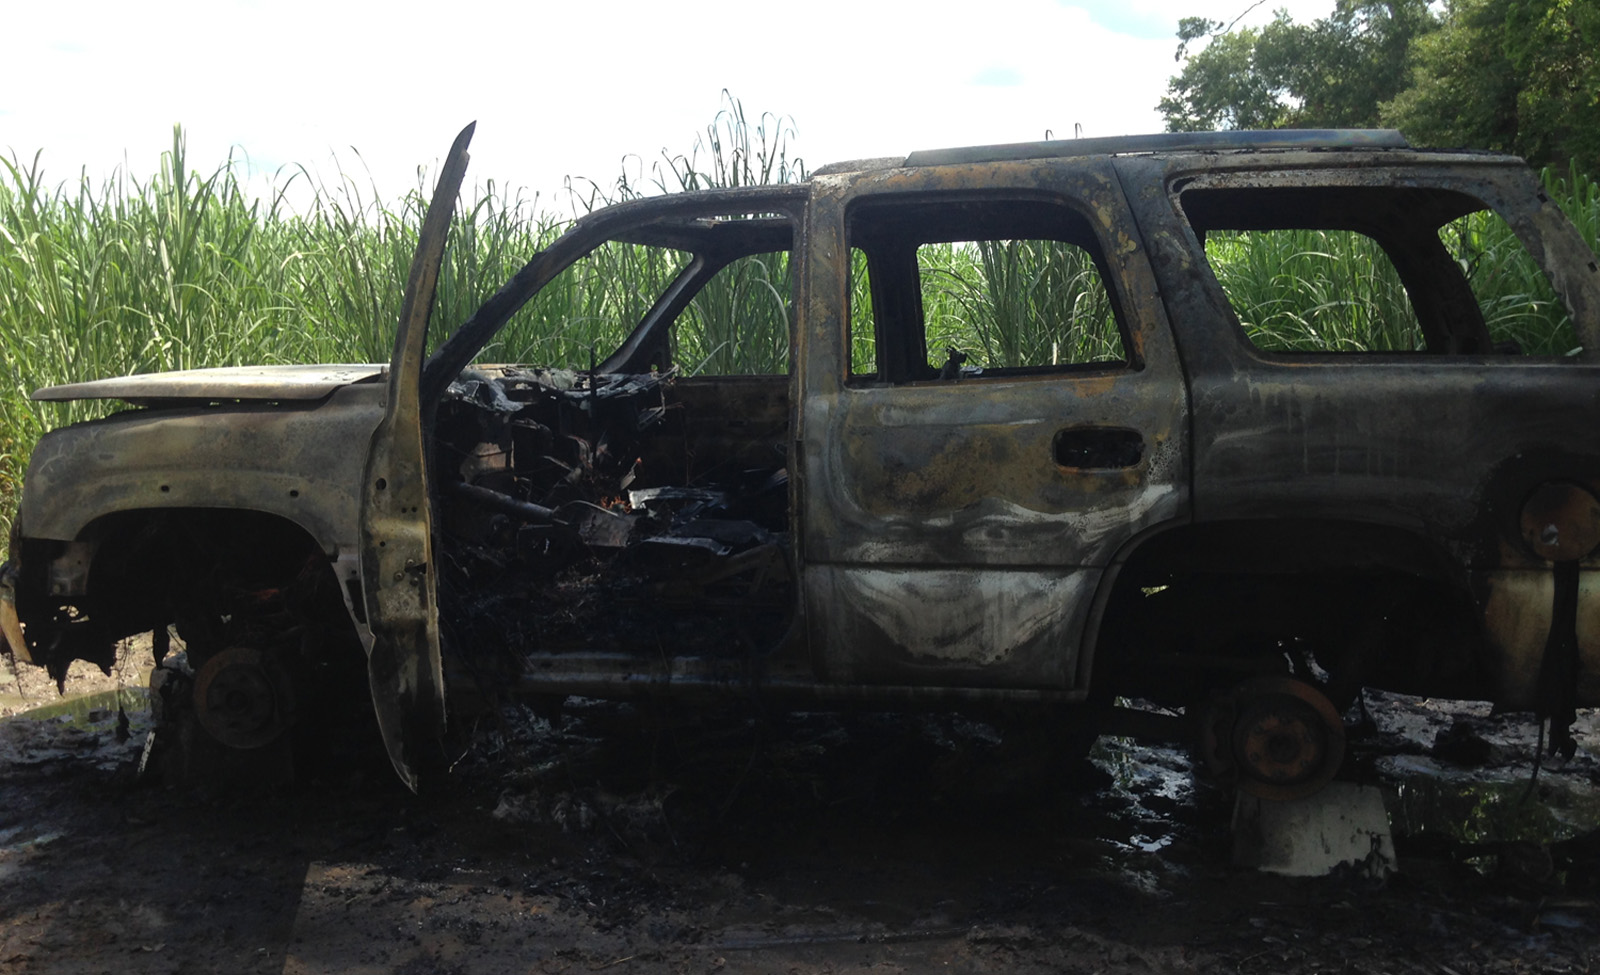 Burned SUV found in Thibodaux